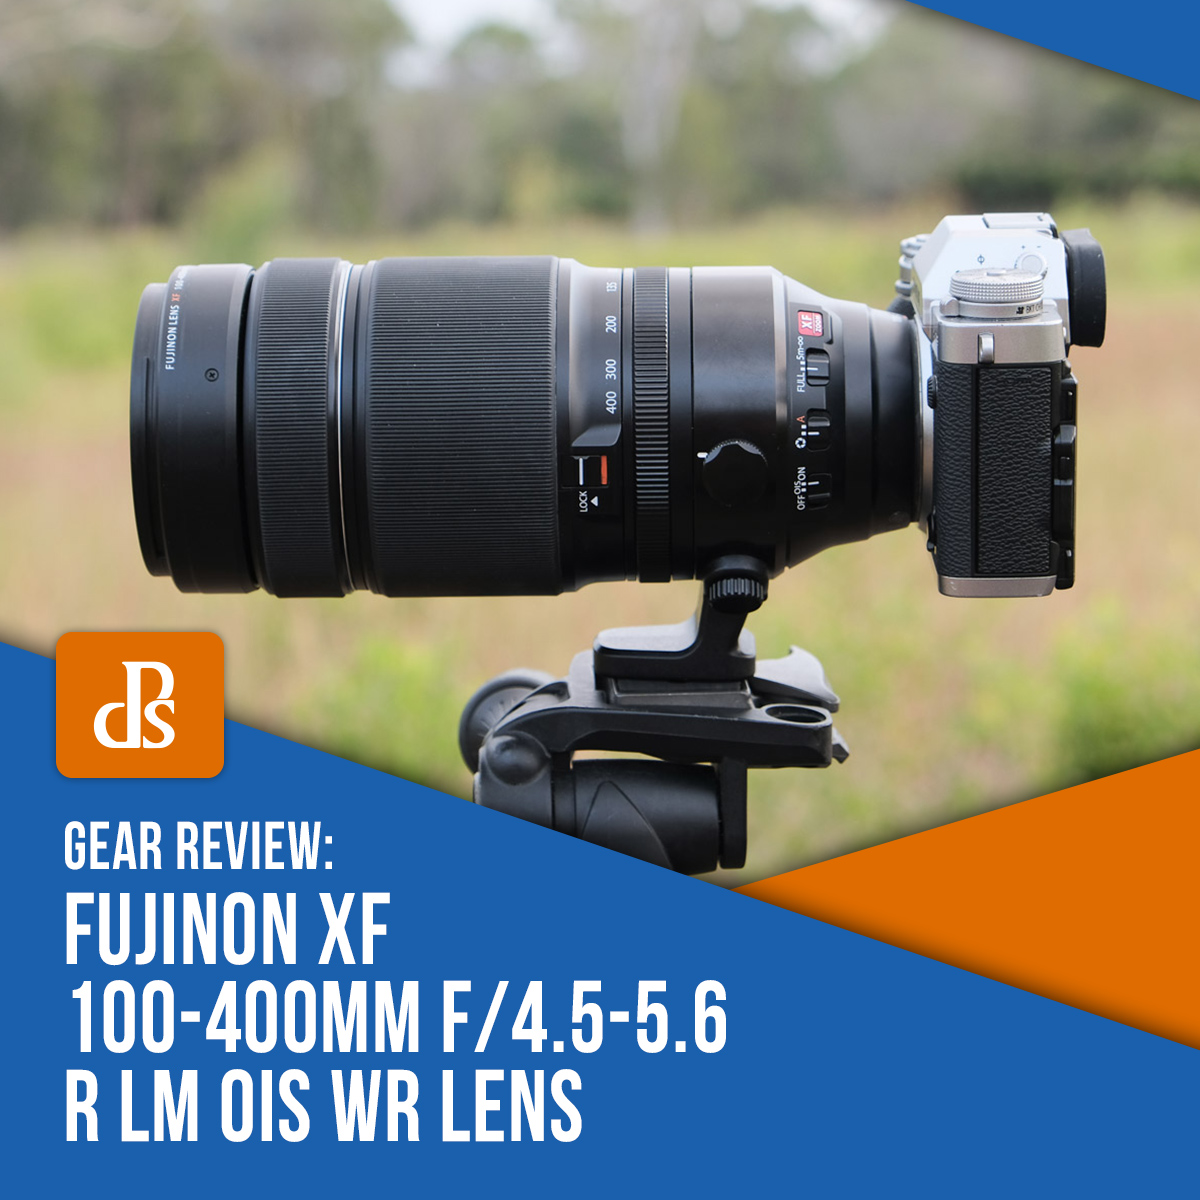 fujinon-XF-100-400mm-lens-review